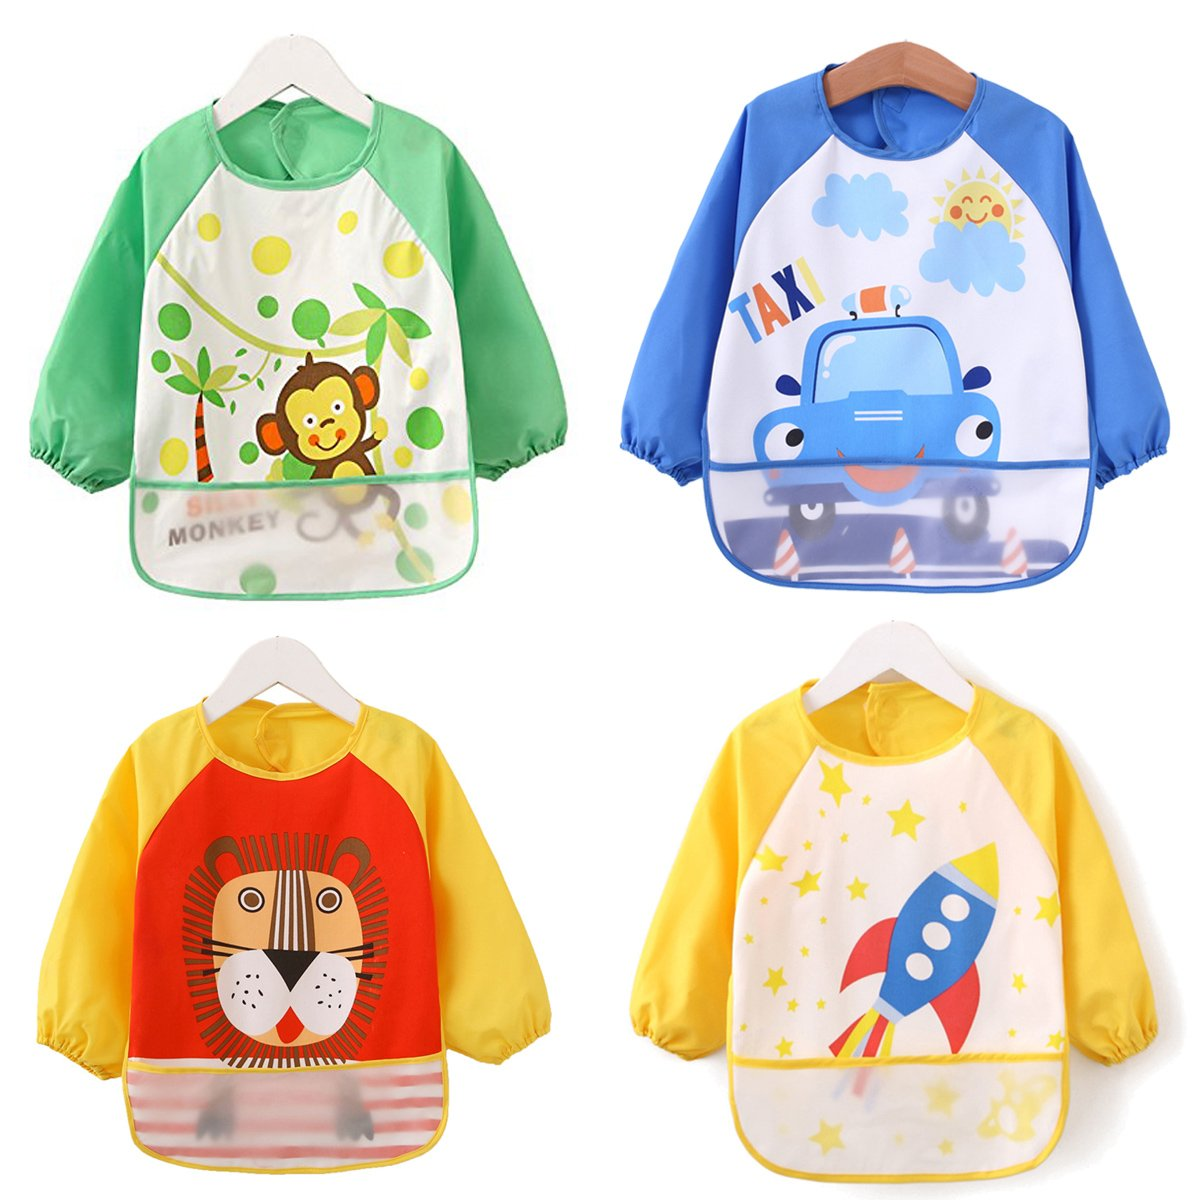 ElecMotive 4pcs Baby Kids Waterproof Feeding Bibs Long Sleeve Art Apron Smock Sleeved Bib 9 Months - 4 Years